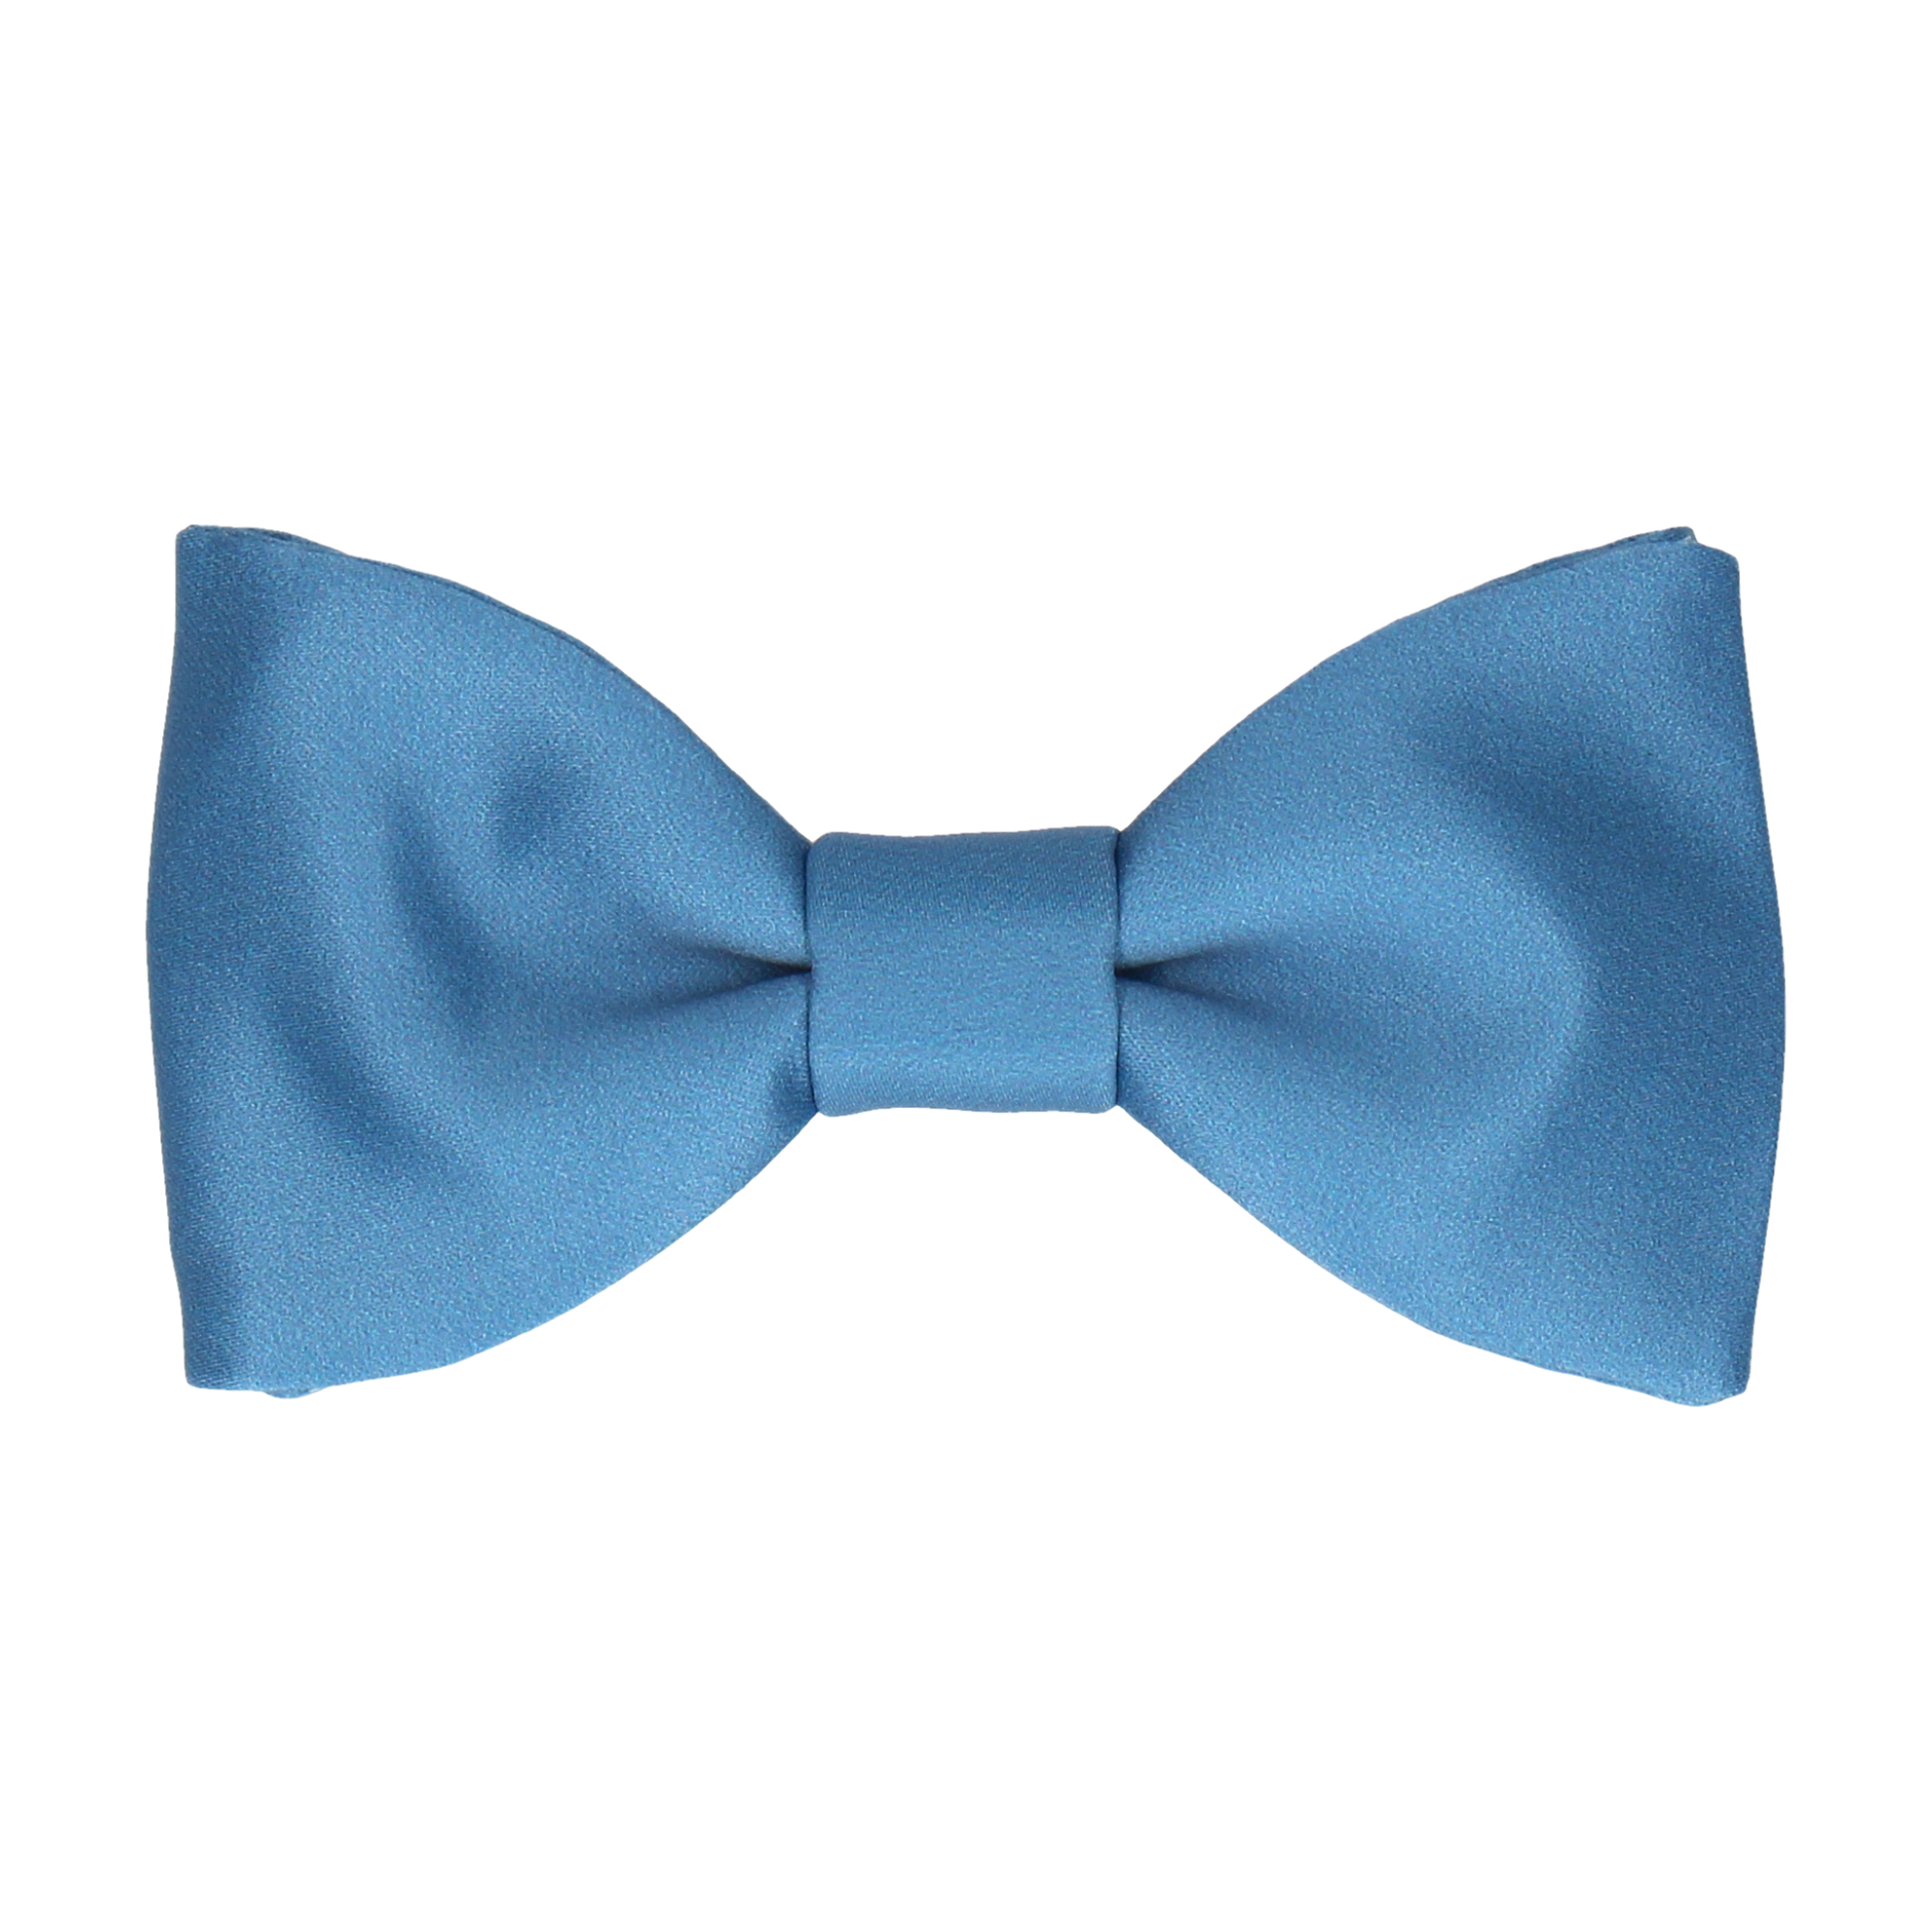 Classic in Air Force Blue Bow Tie